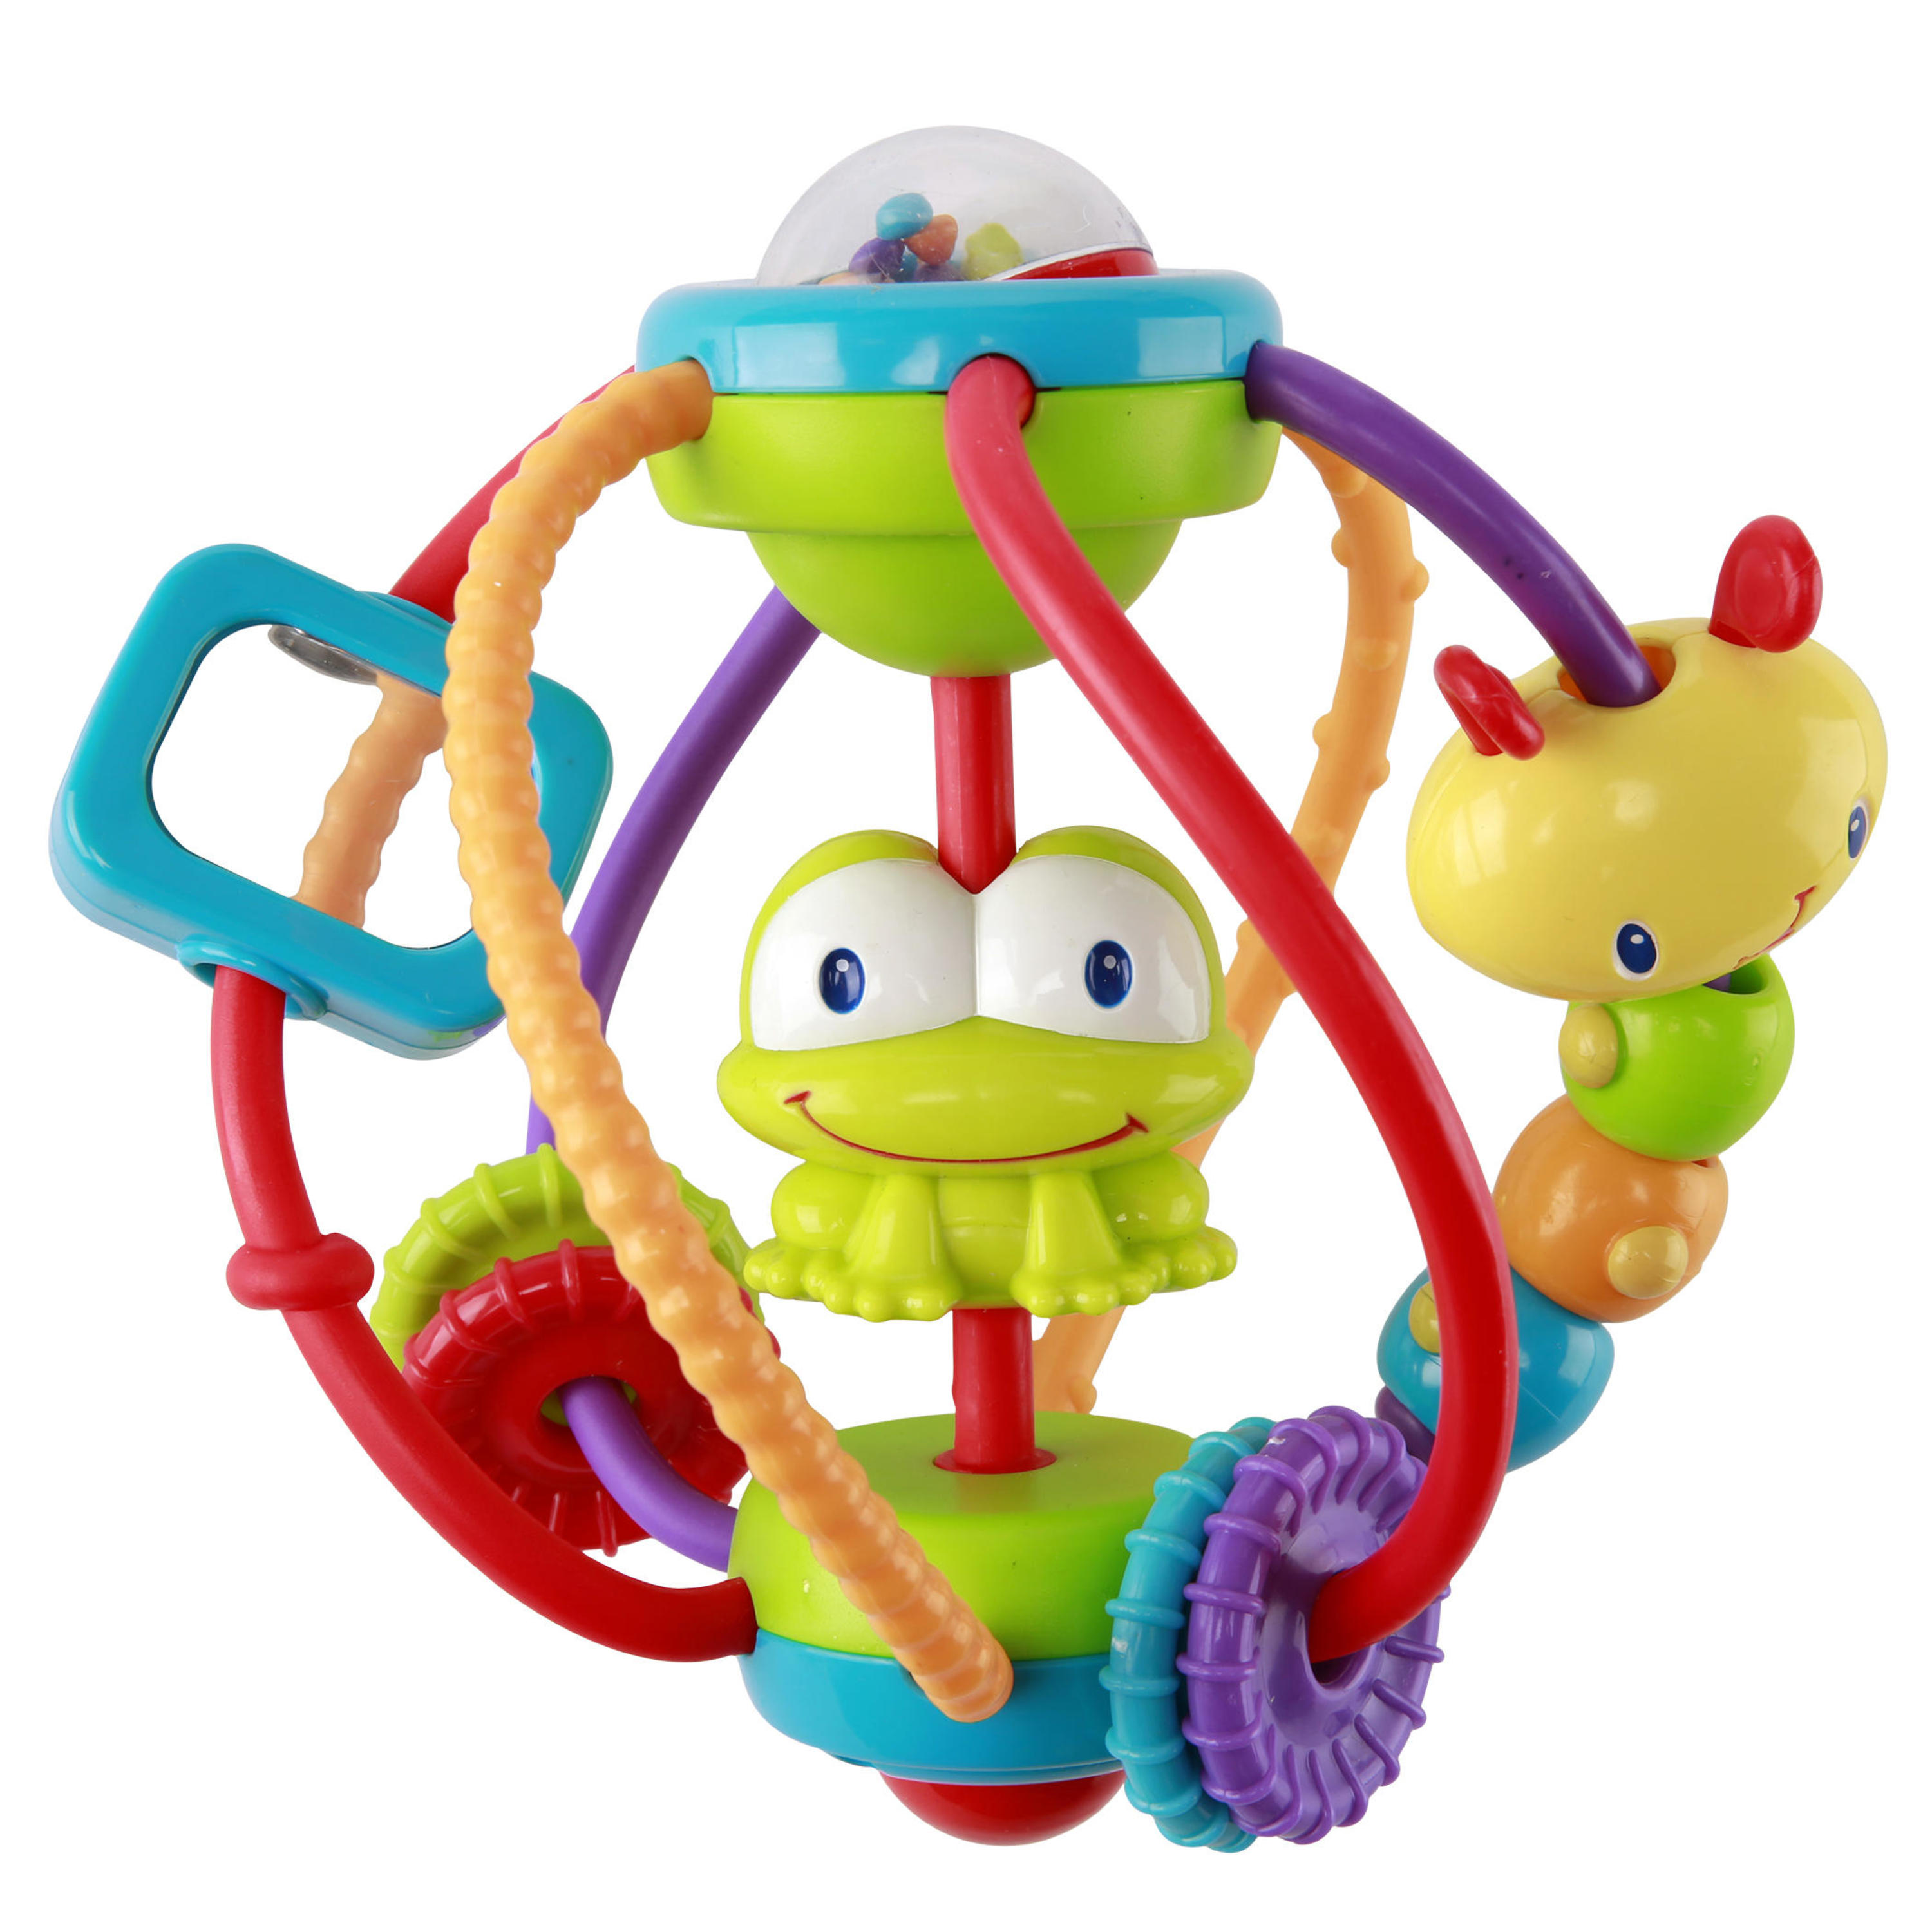 Bright Starts Clack & Slide Activity Ball Toy by Bright Starts